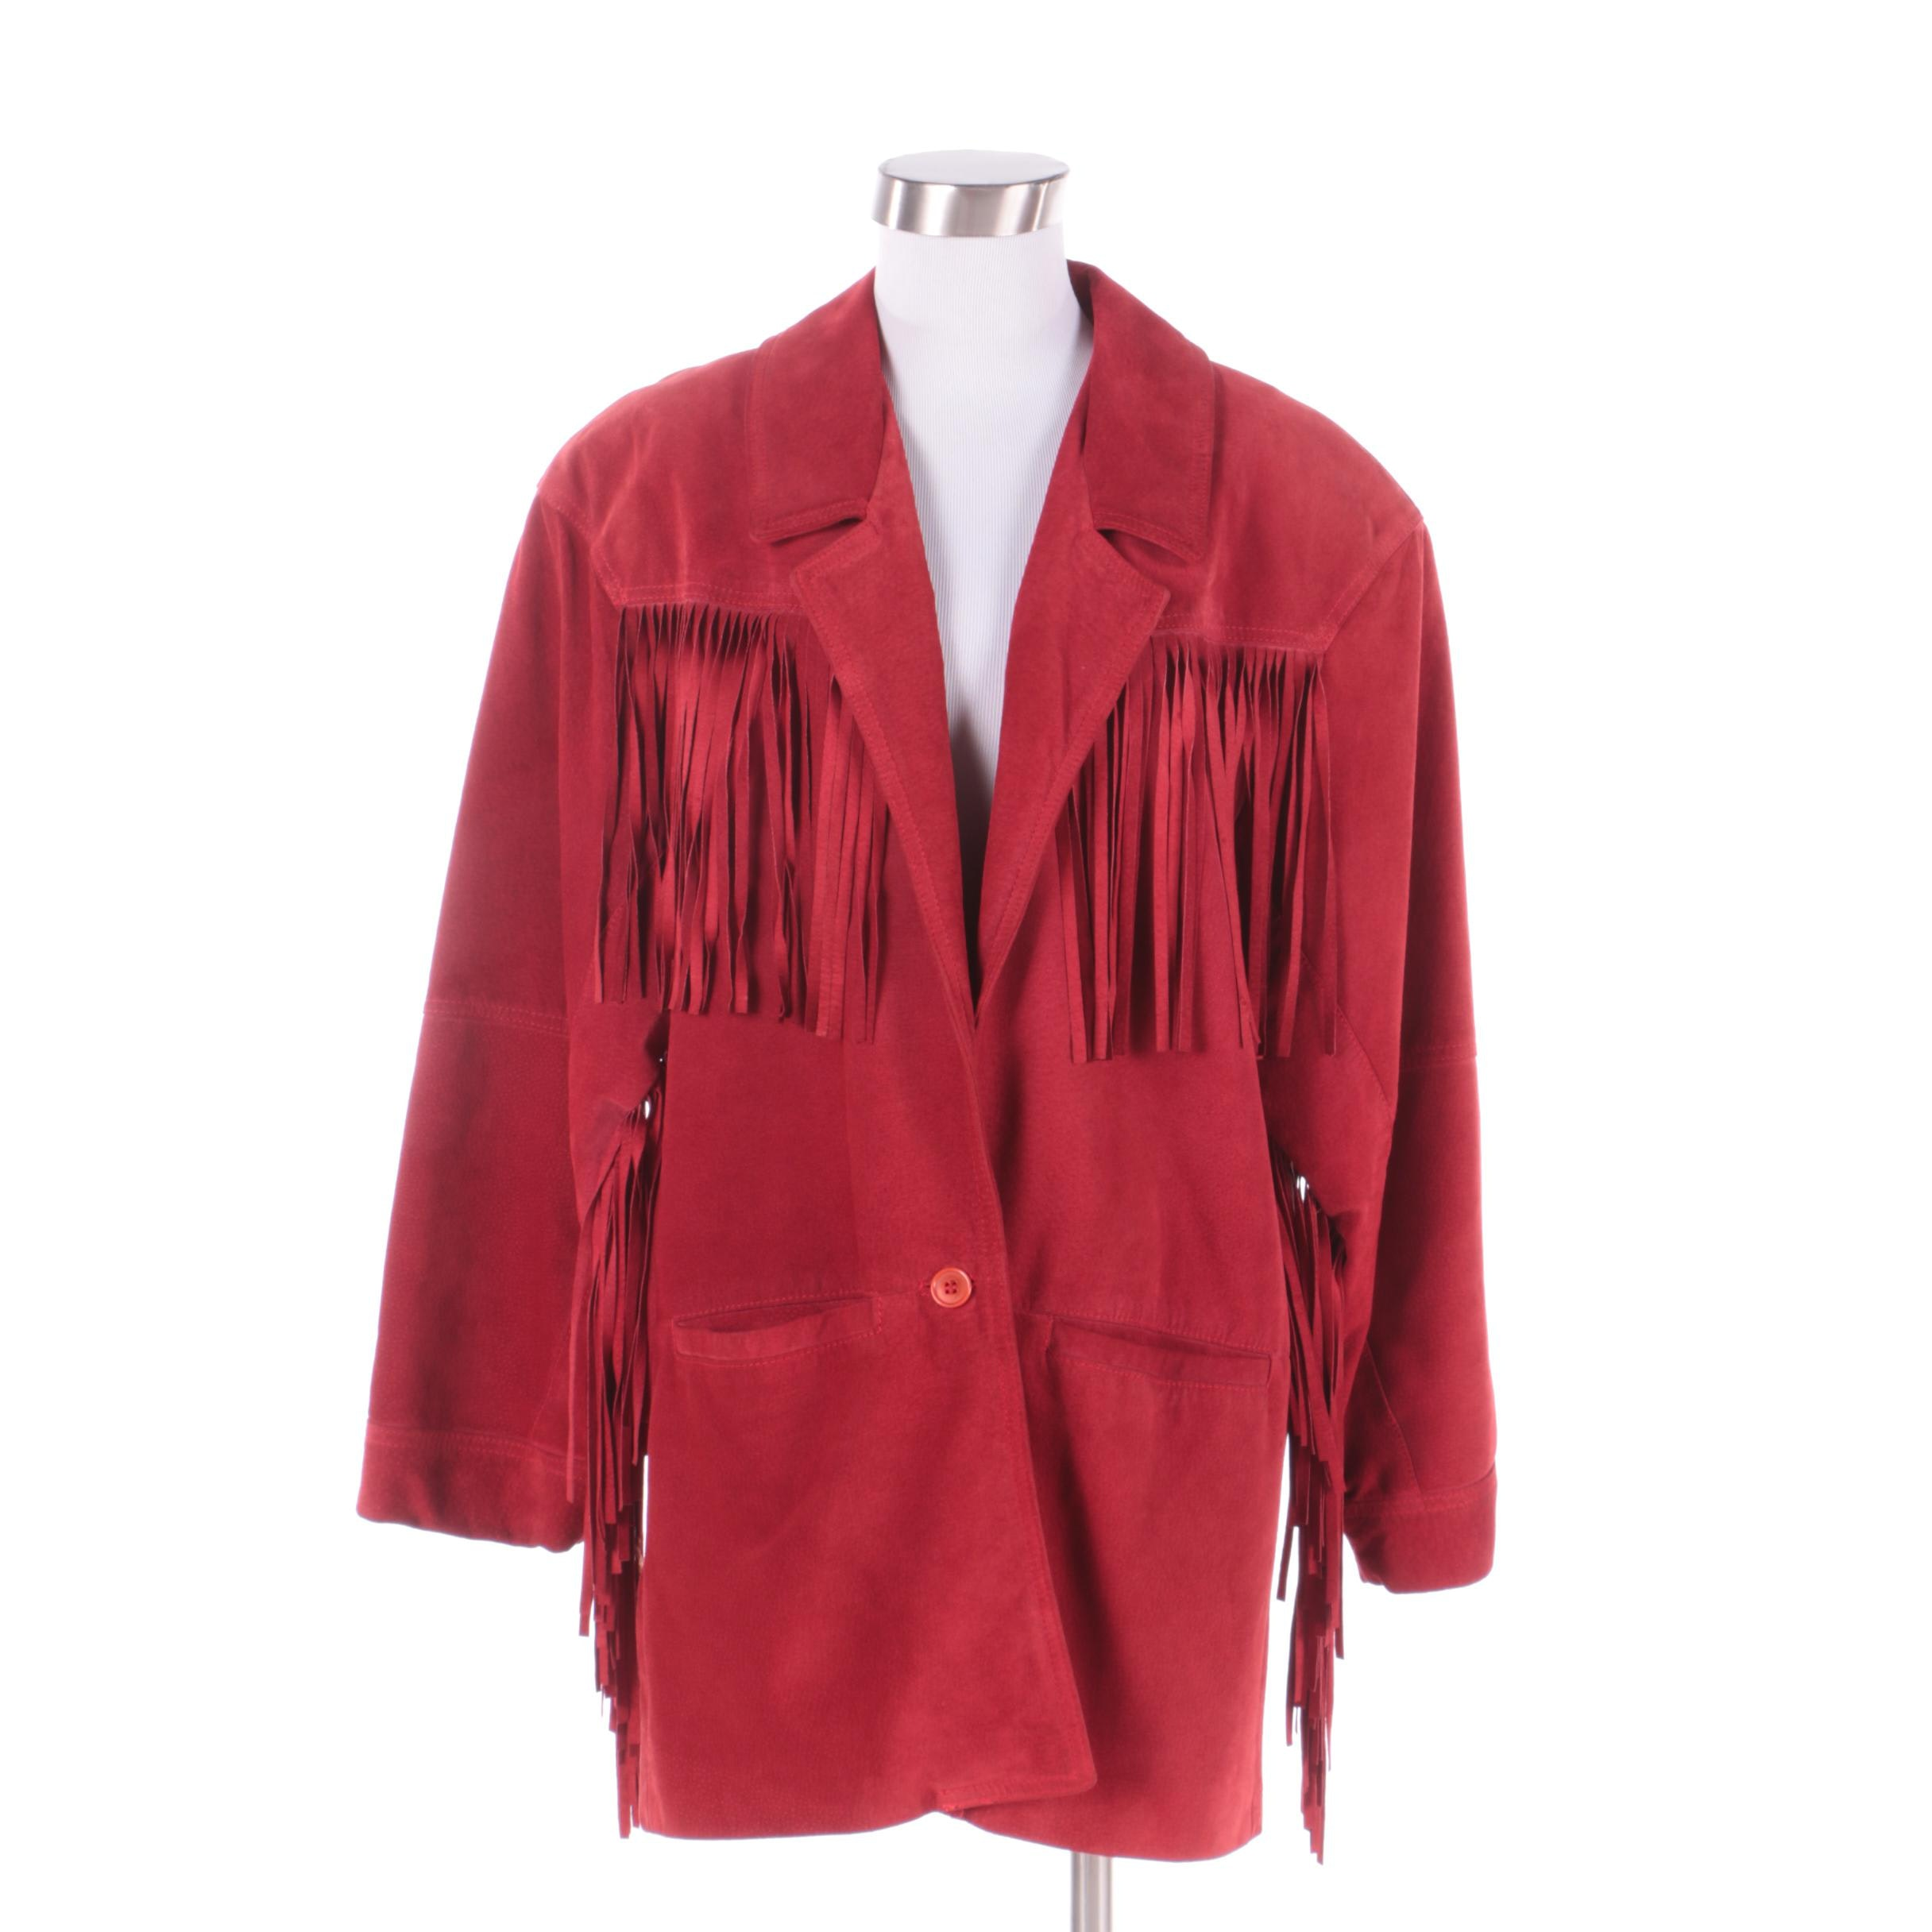 Women's Siena Red Suede Fringed Jacket